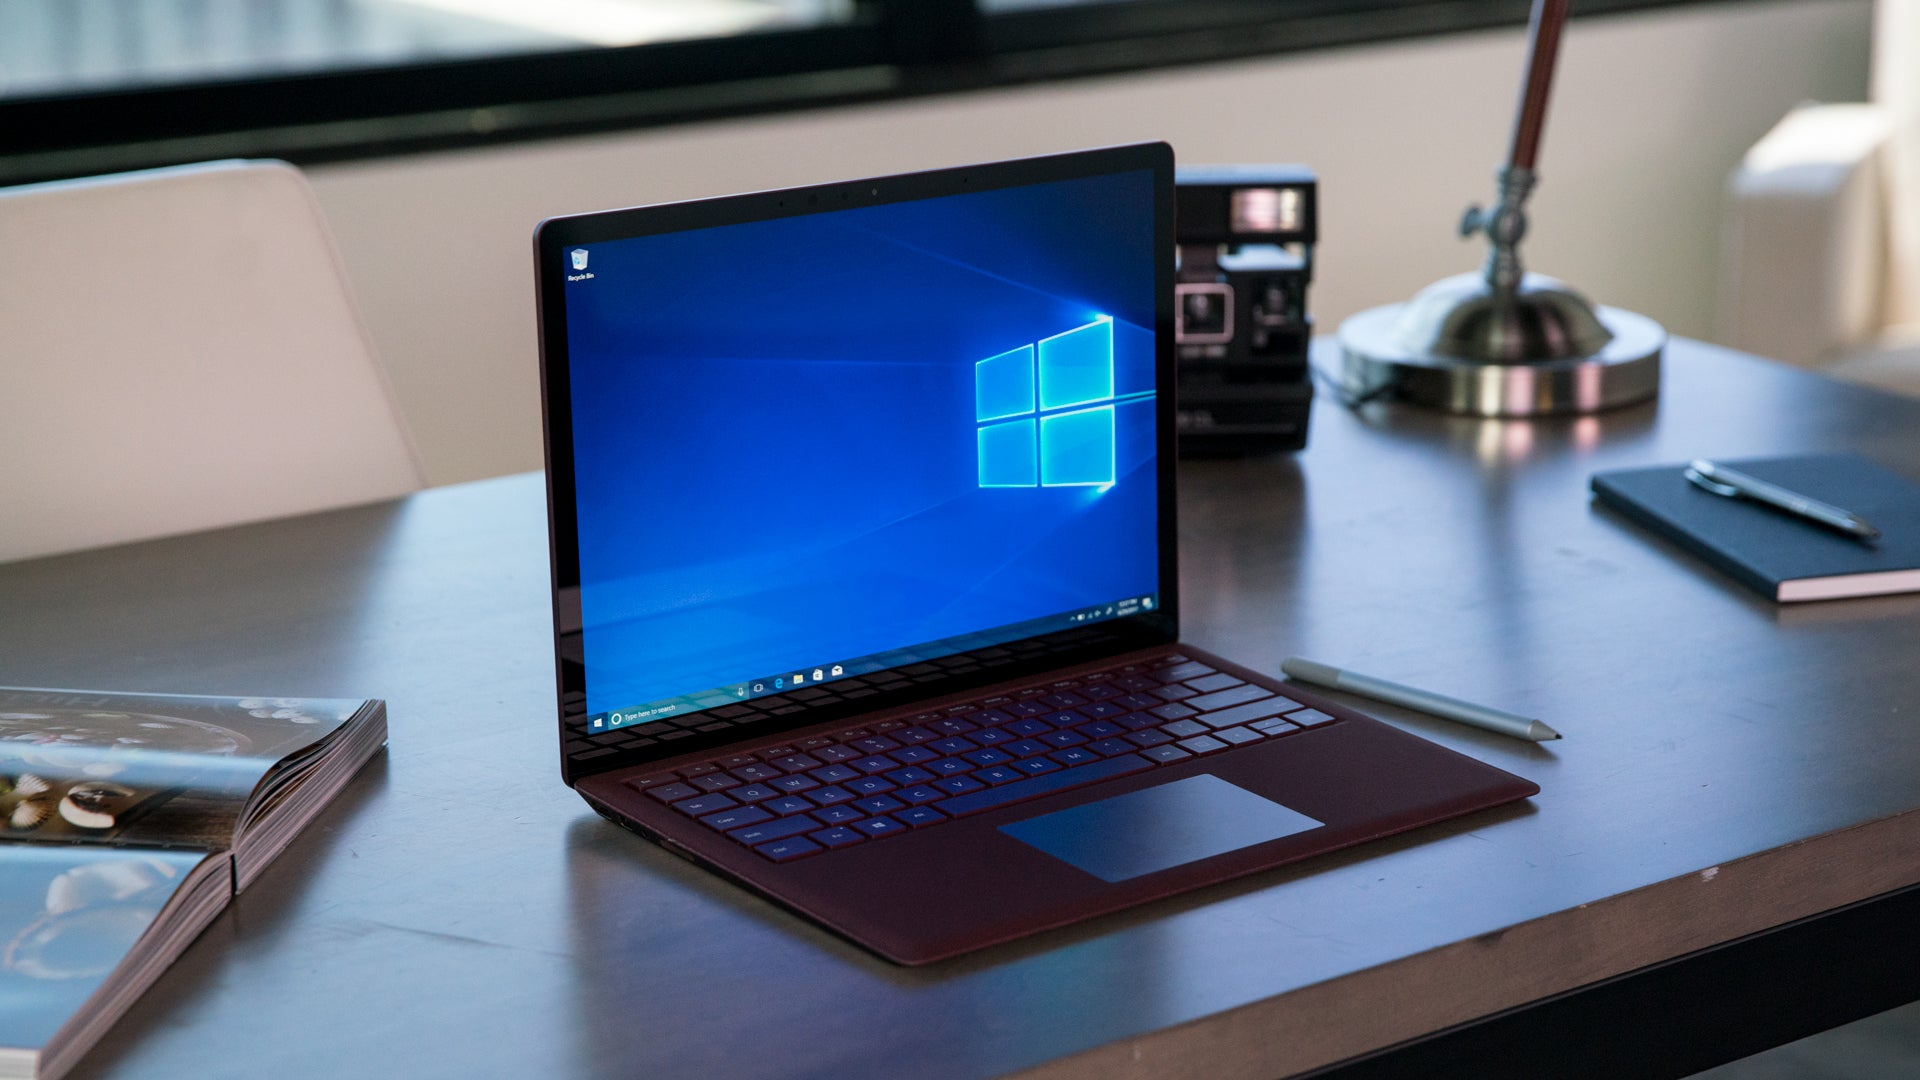 Microsoft Surface Laptop review: It's cool enough for school